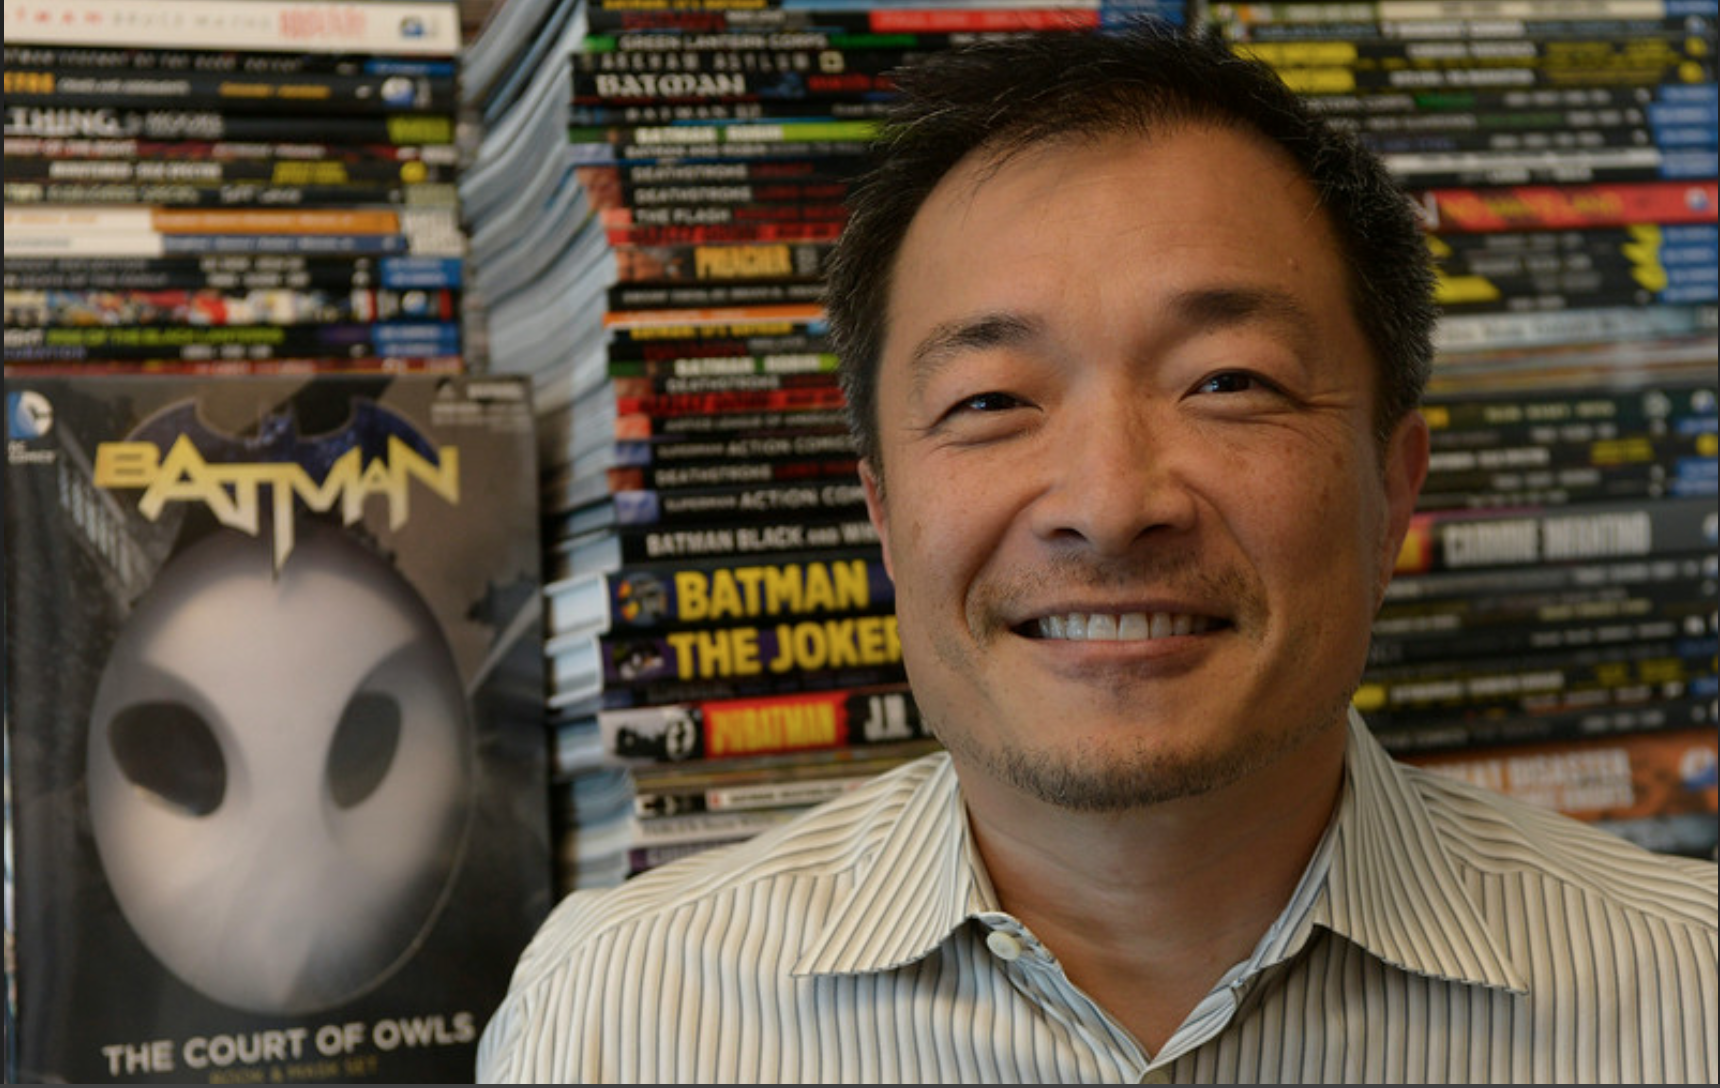 Jim Lee poses with Batman Merchandise in the background of his office.